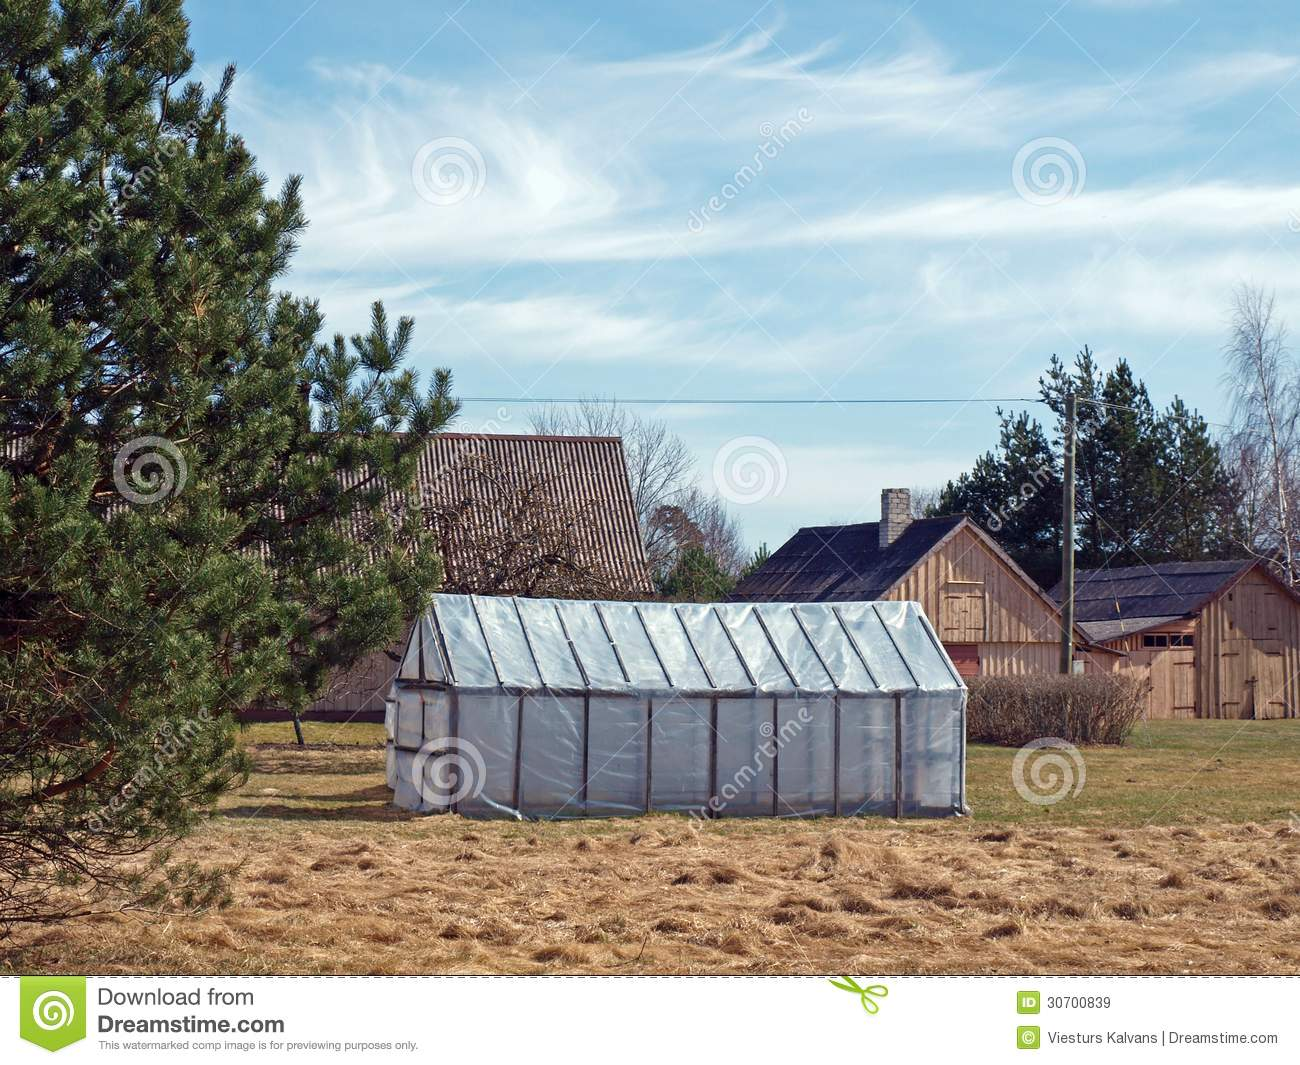 Simple greenhouse royalty free stock images image 30700839 for Country farm simples